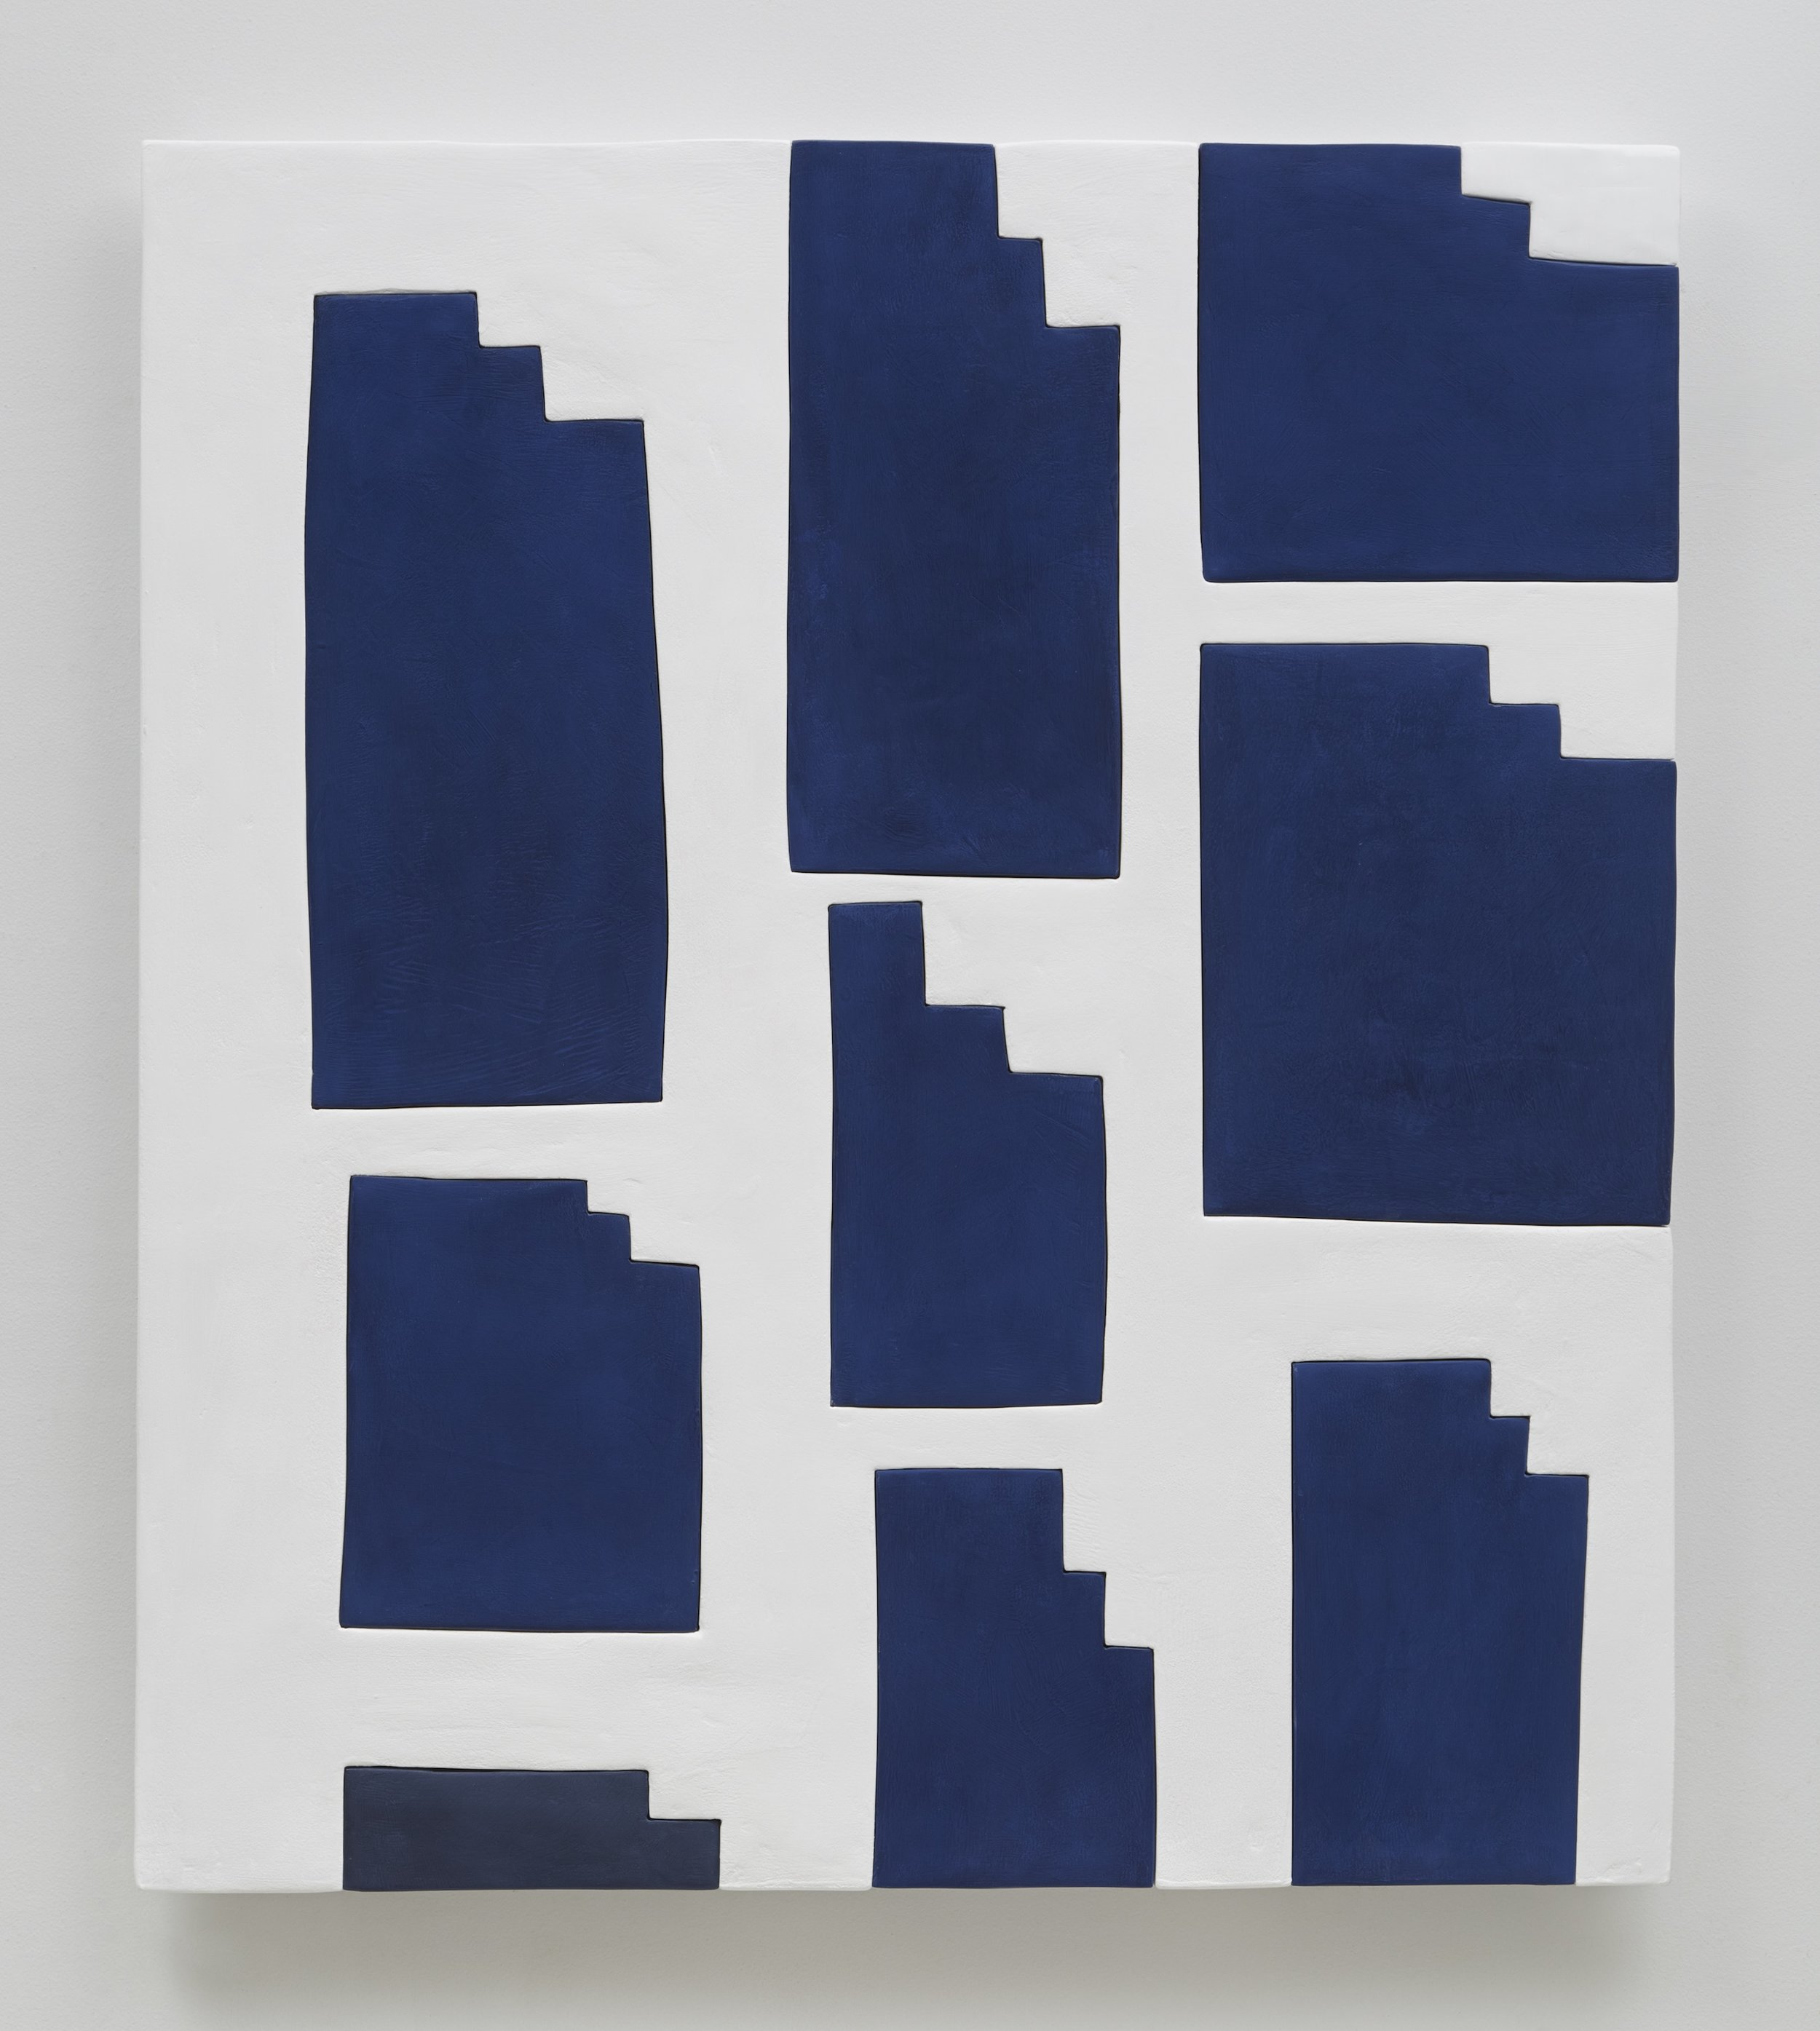 Sadie Benning, Animation blue and white, 2015 medite, aqua resin, casein and acrylic 41 x 36 inches